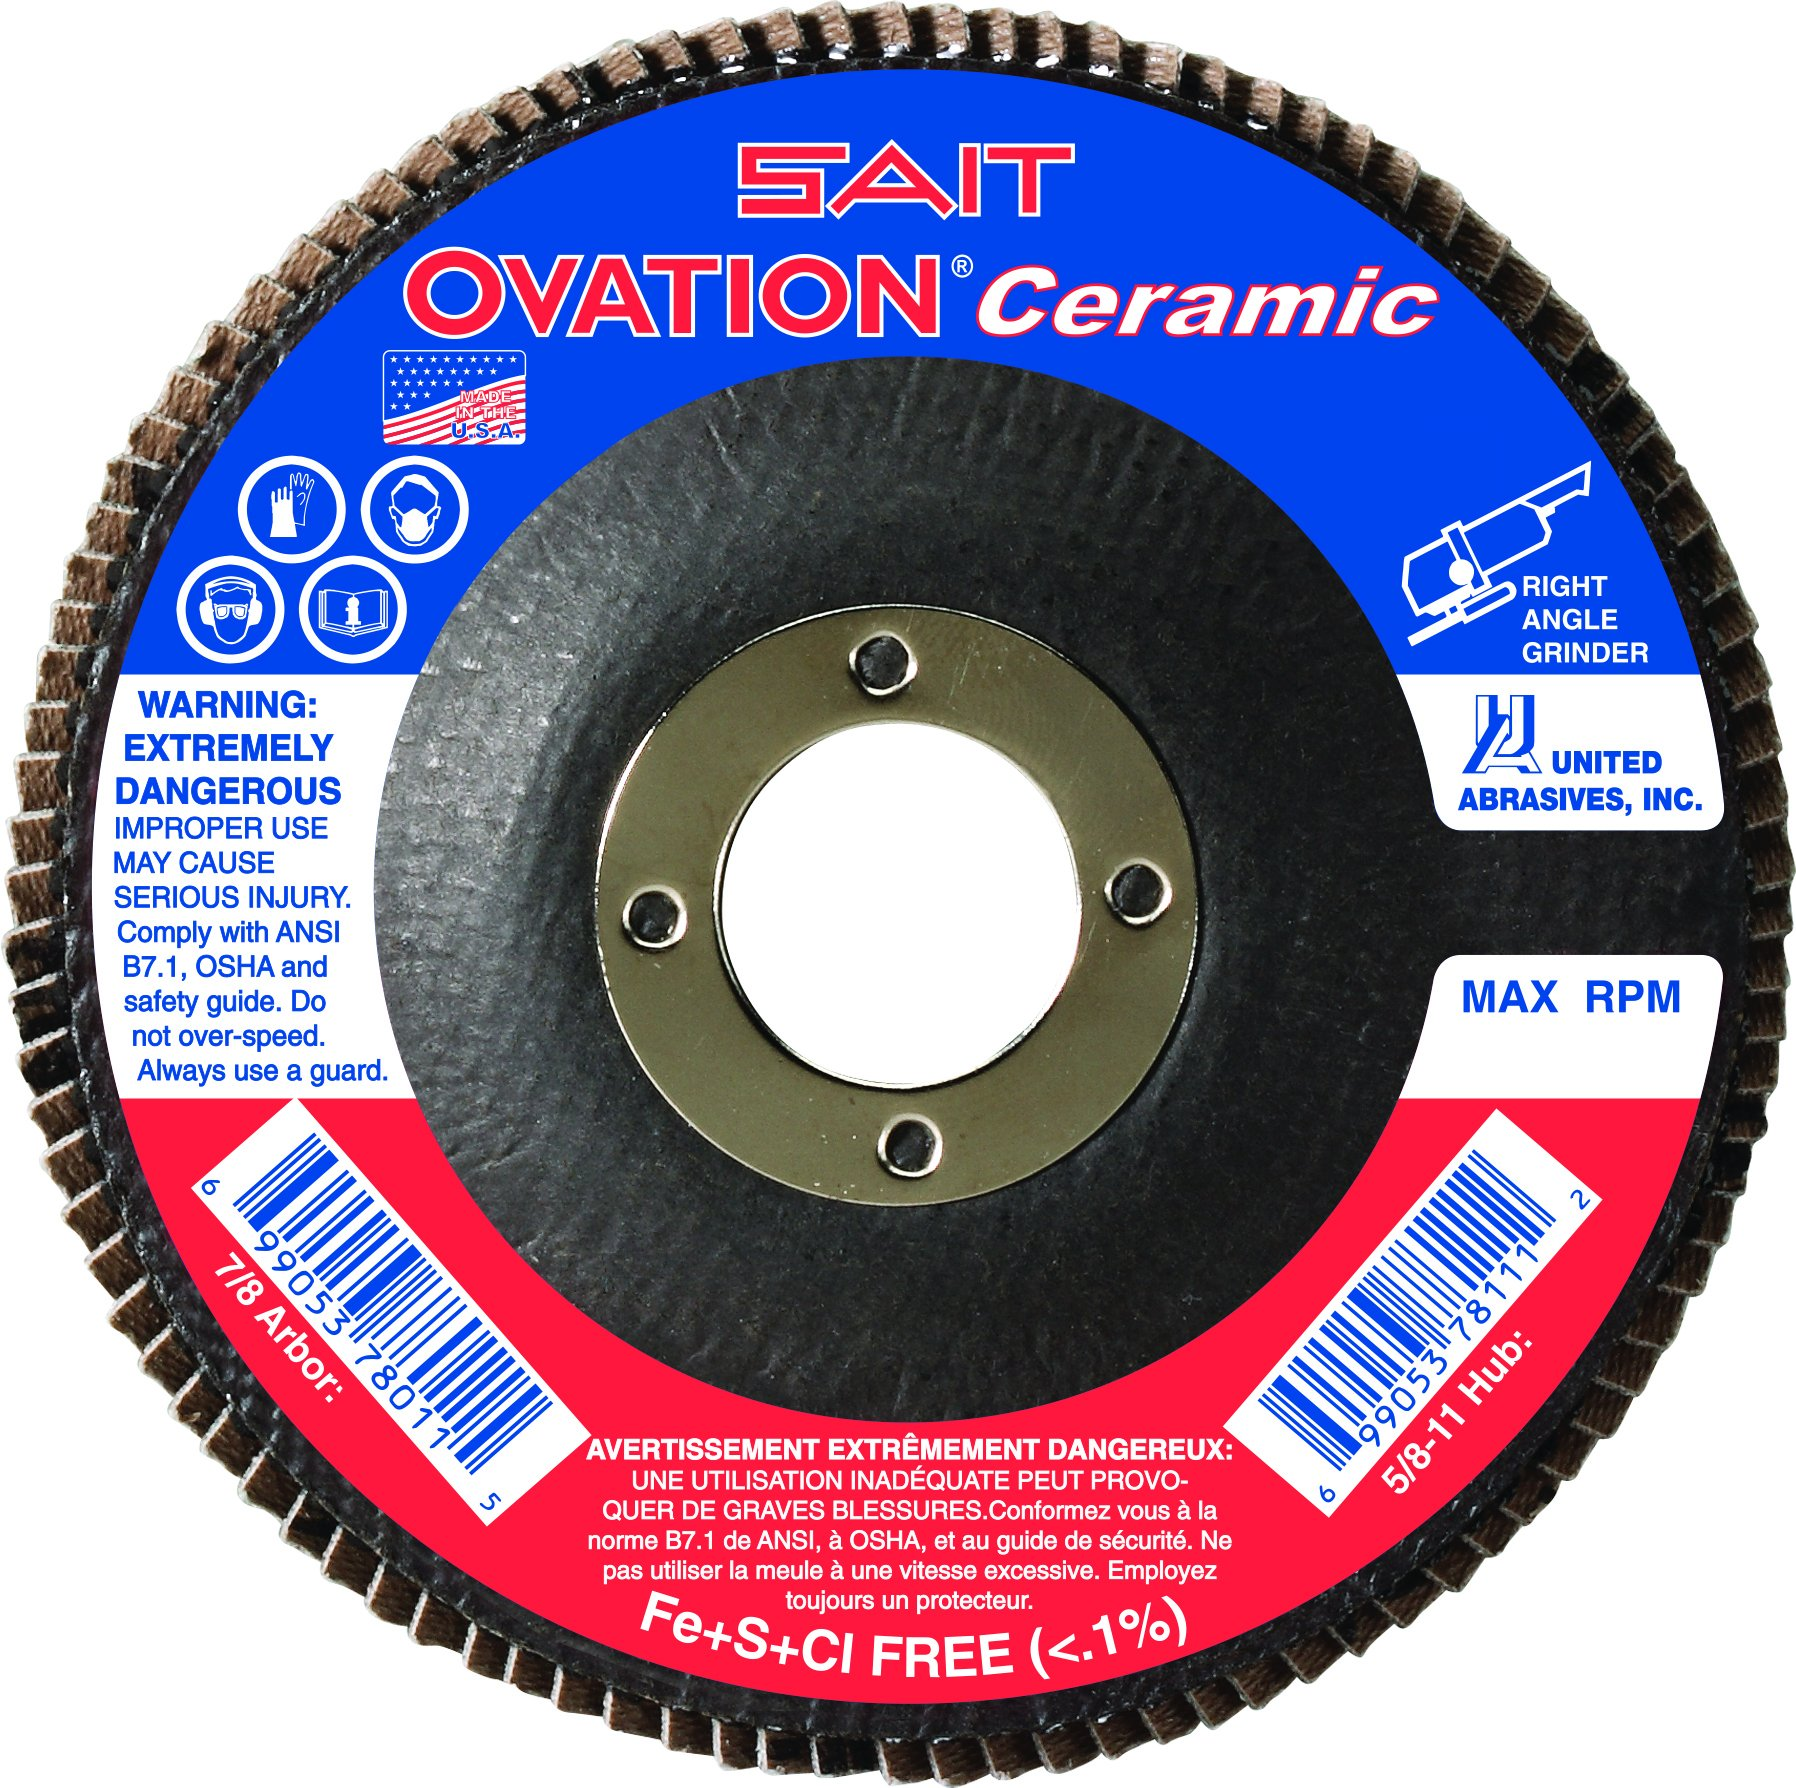 United Abrasives- SAIT 78262 Ovation Ceramic Flap Disc with 4-1/2-Inch Diameter and 7/8-Inch Arbor, 10-Piece